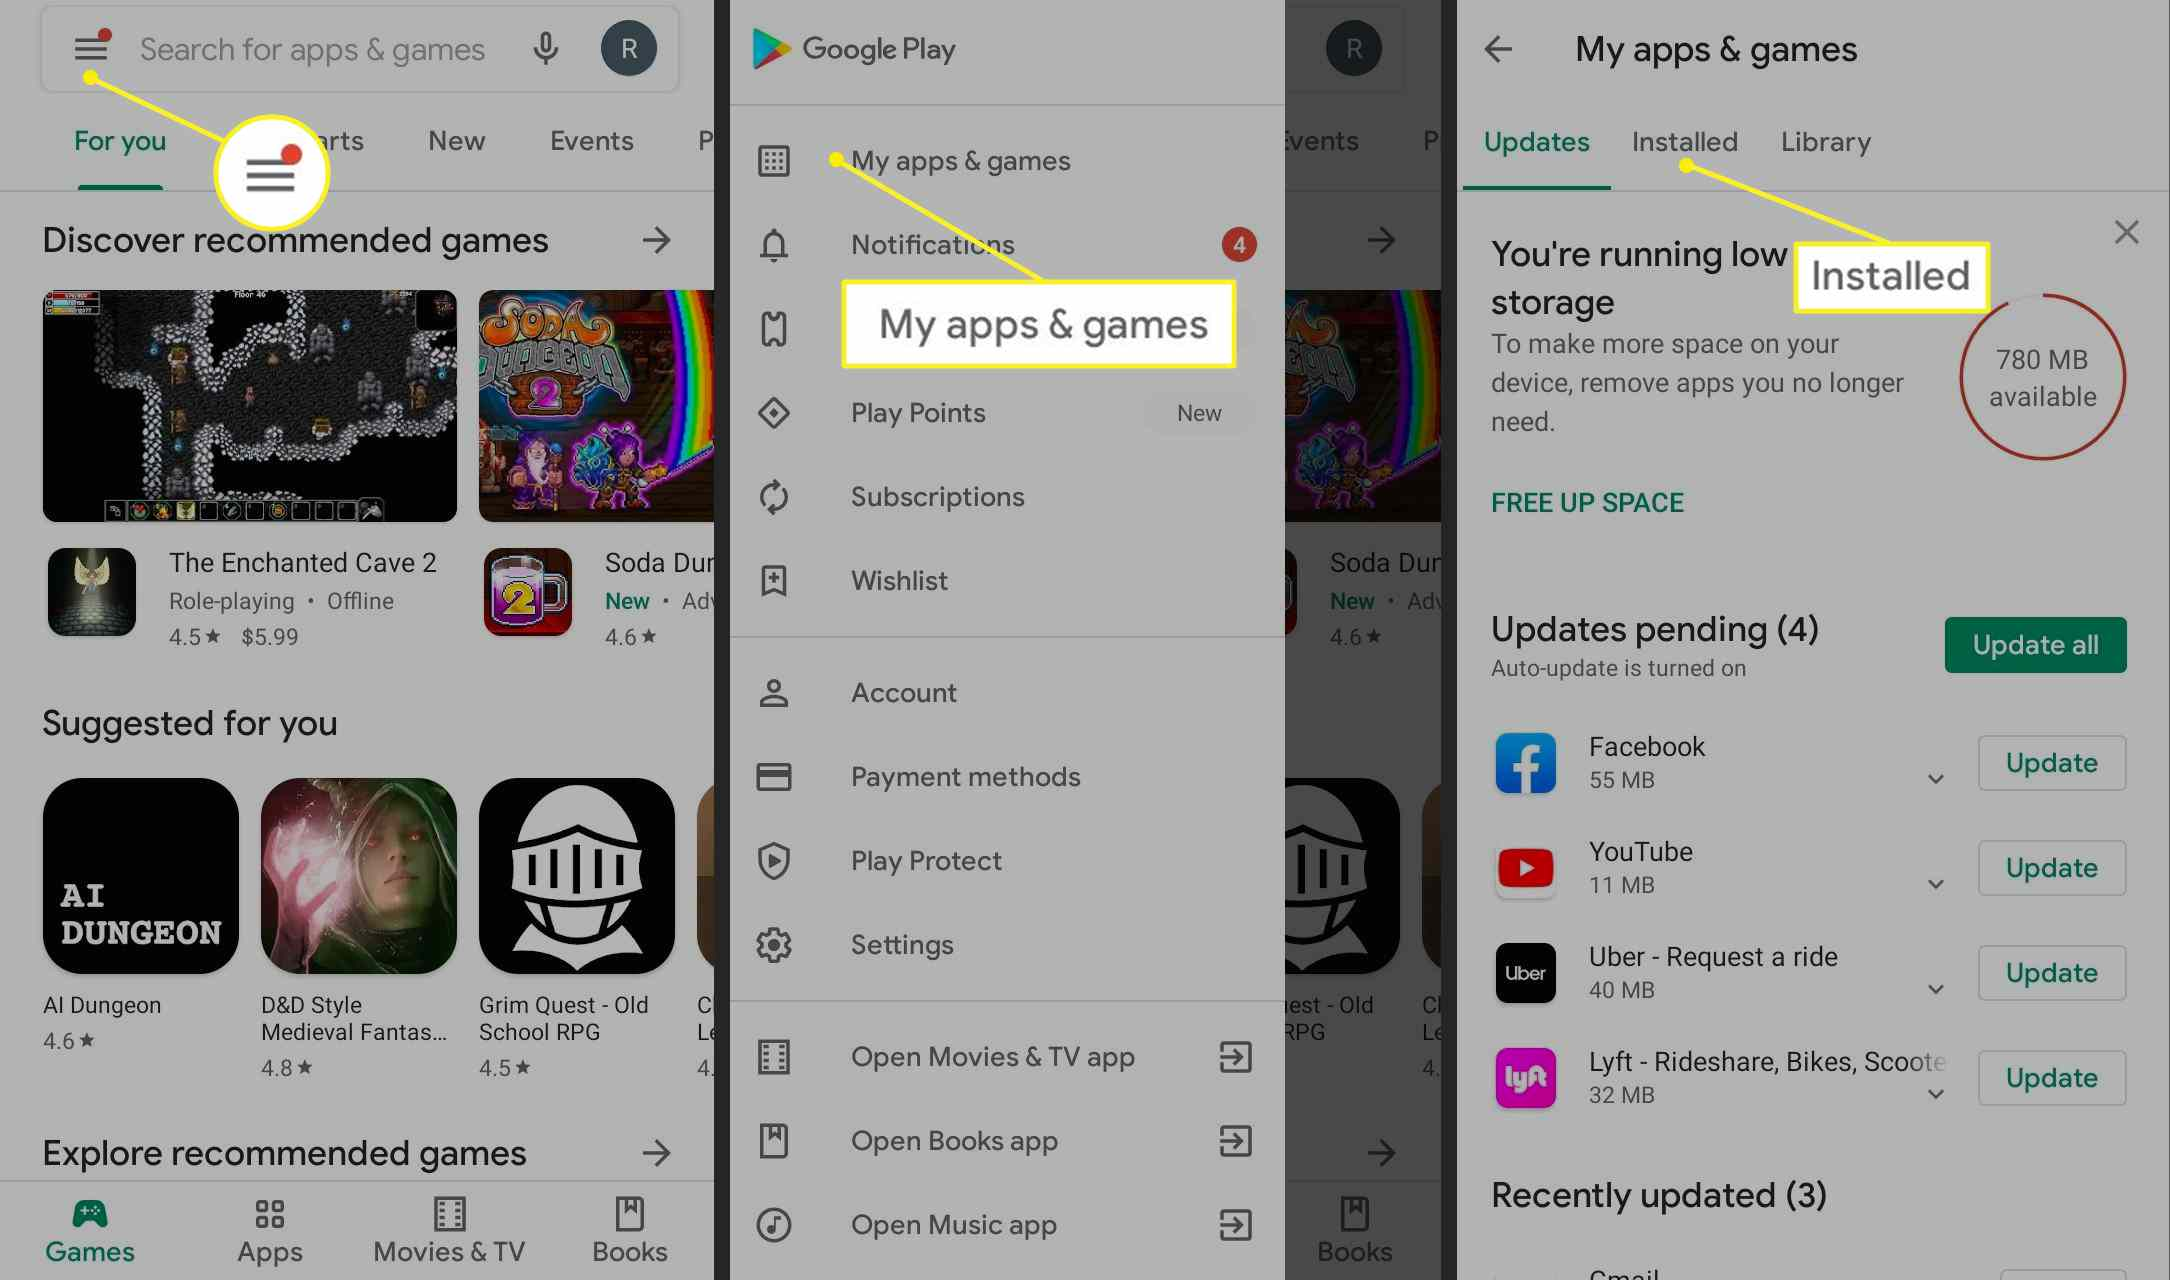 Google Play app path to installed apps & games